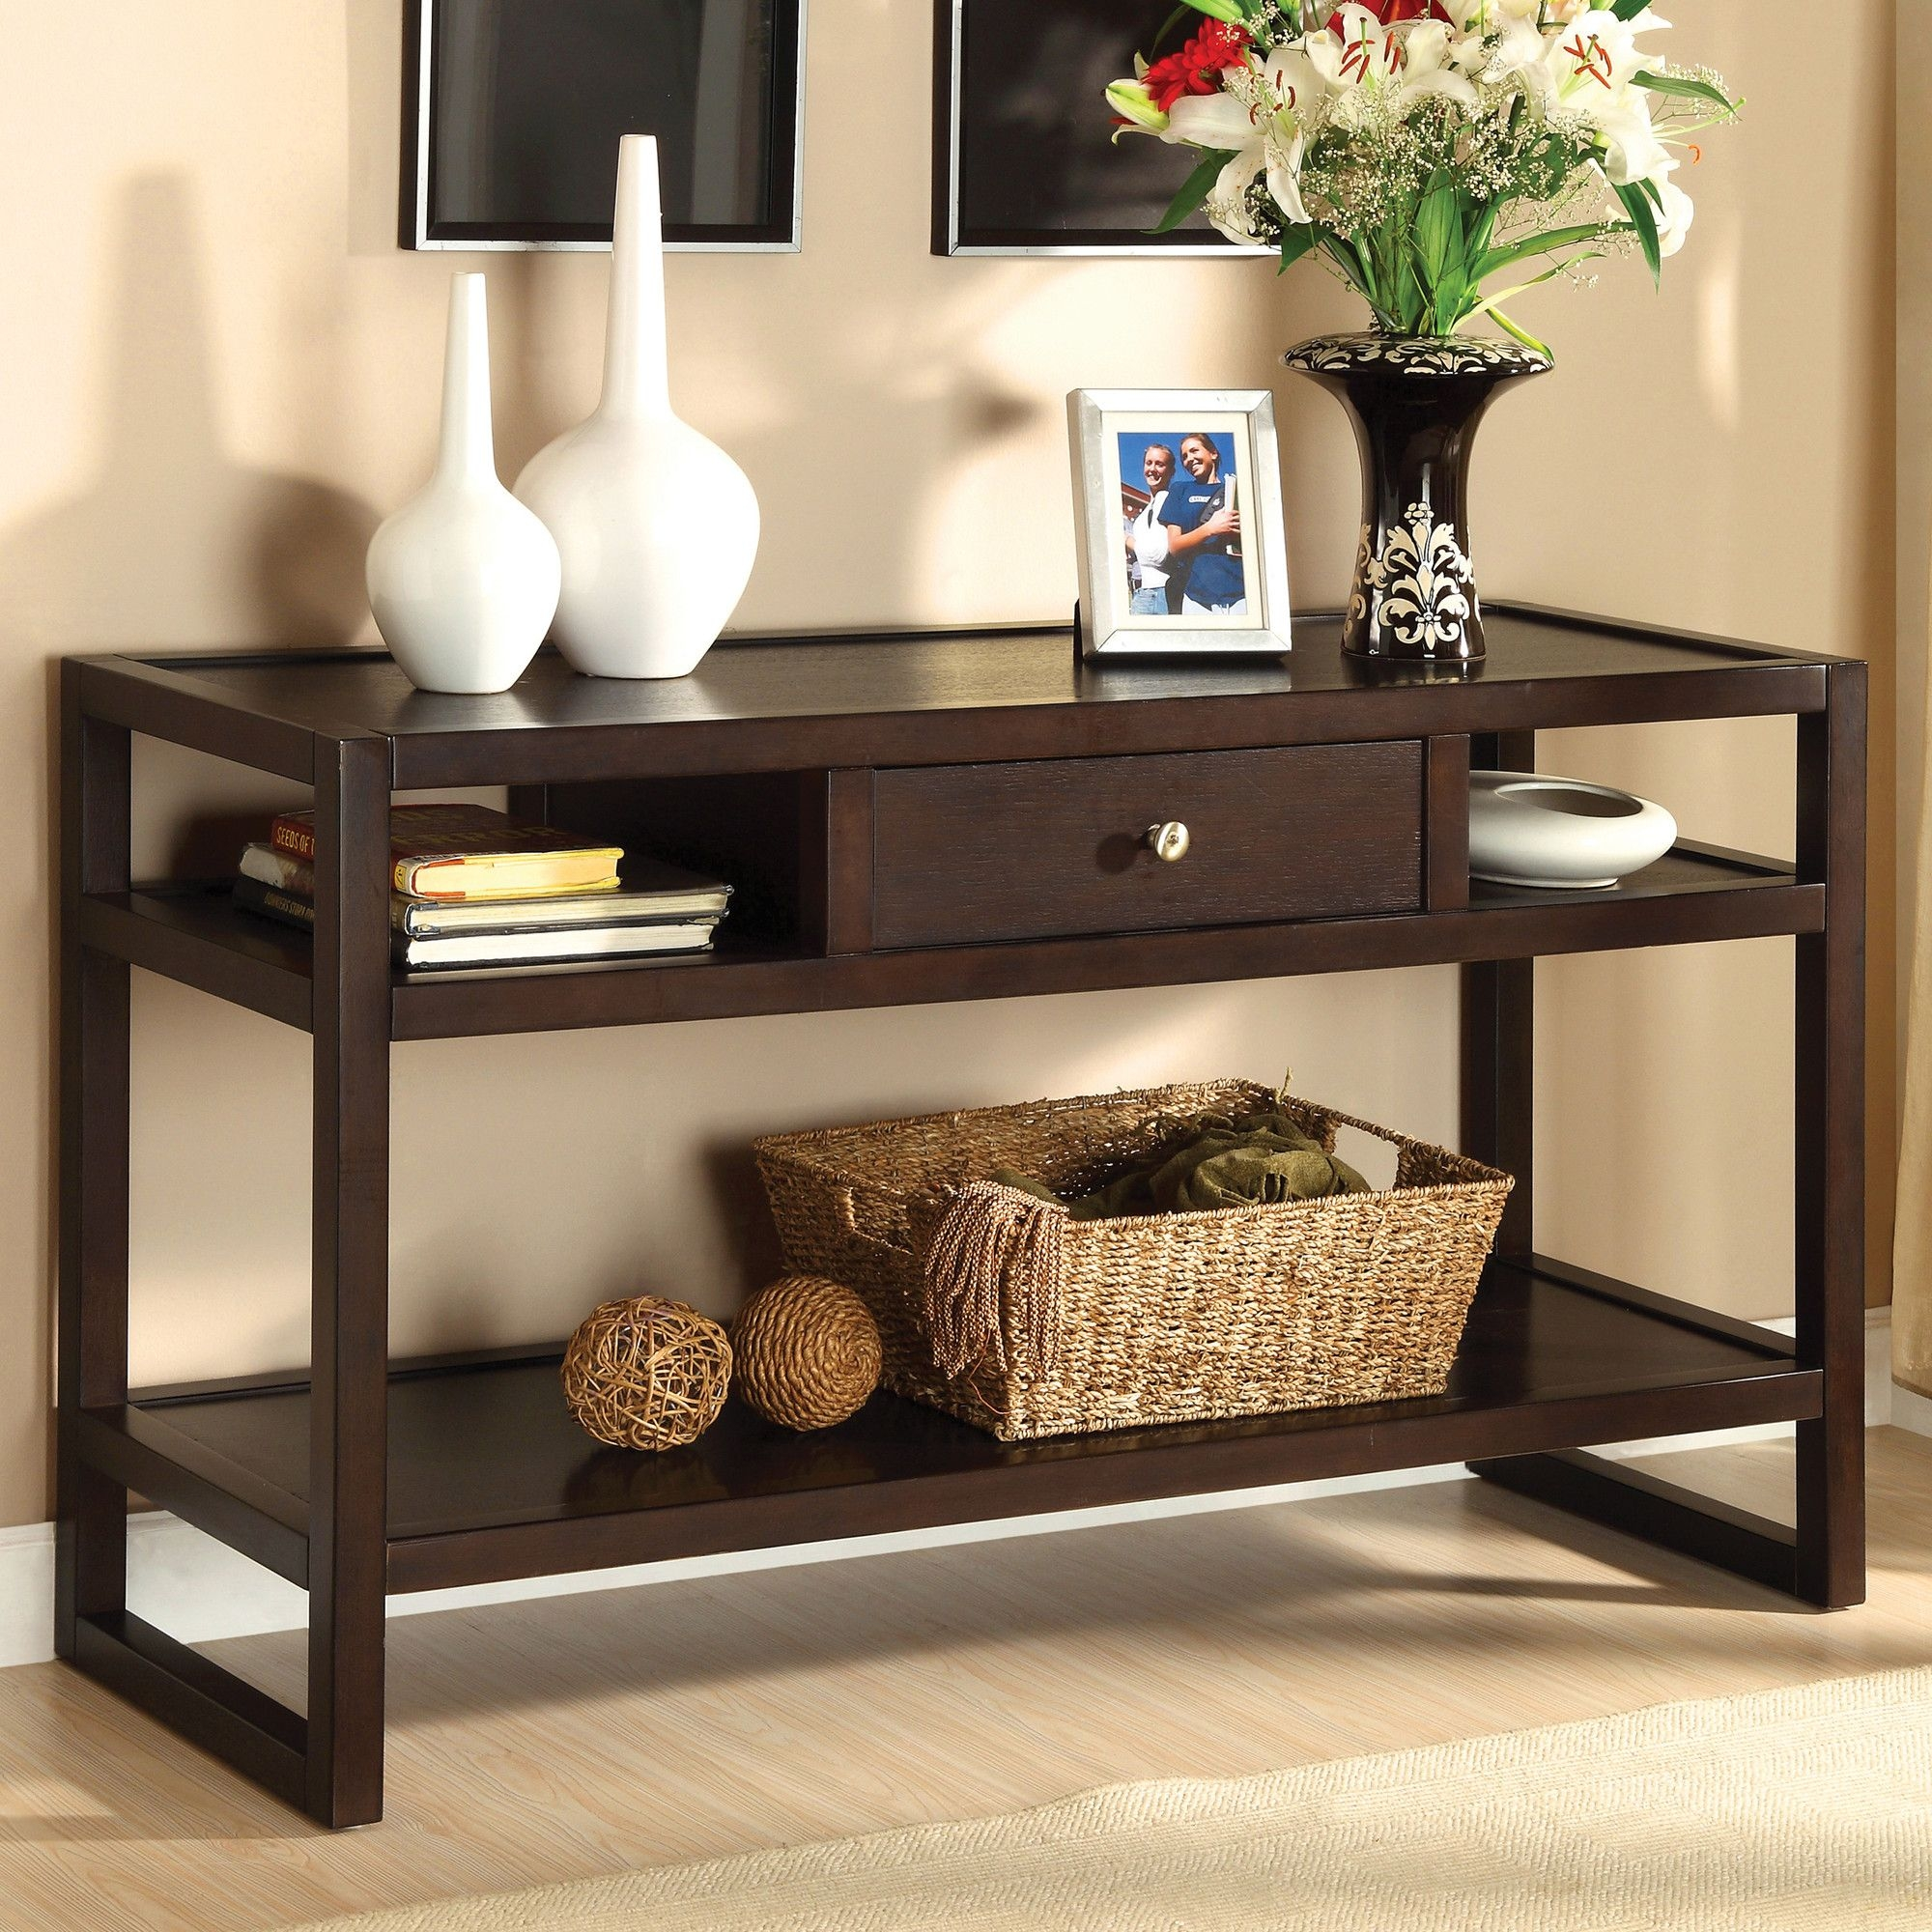 Incroyable Sofa Table With Storage Drawers   Ideas On Foter